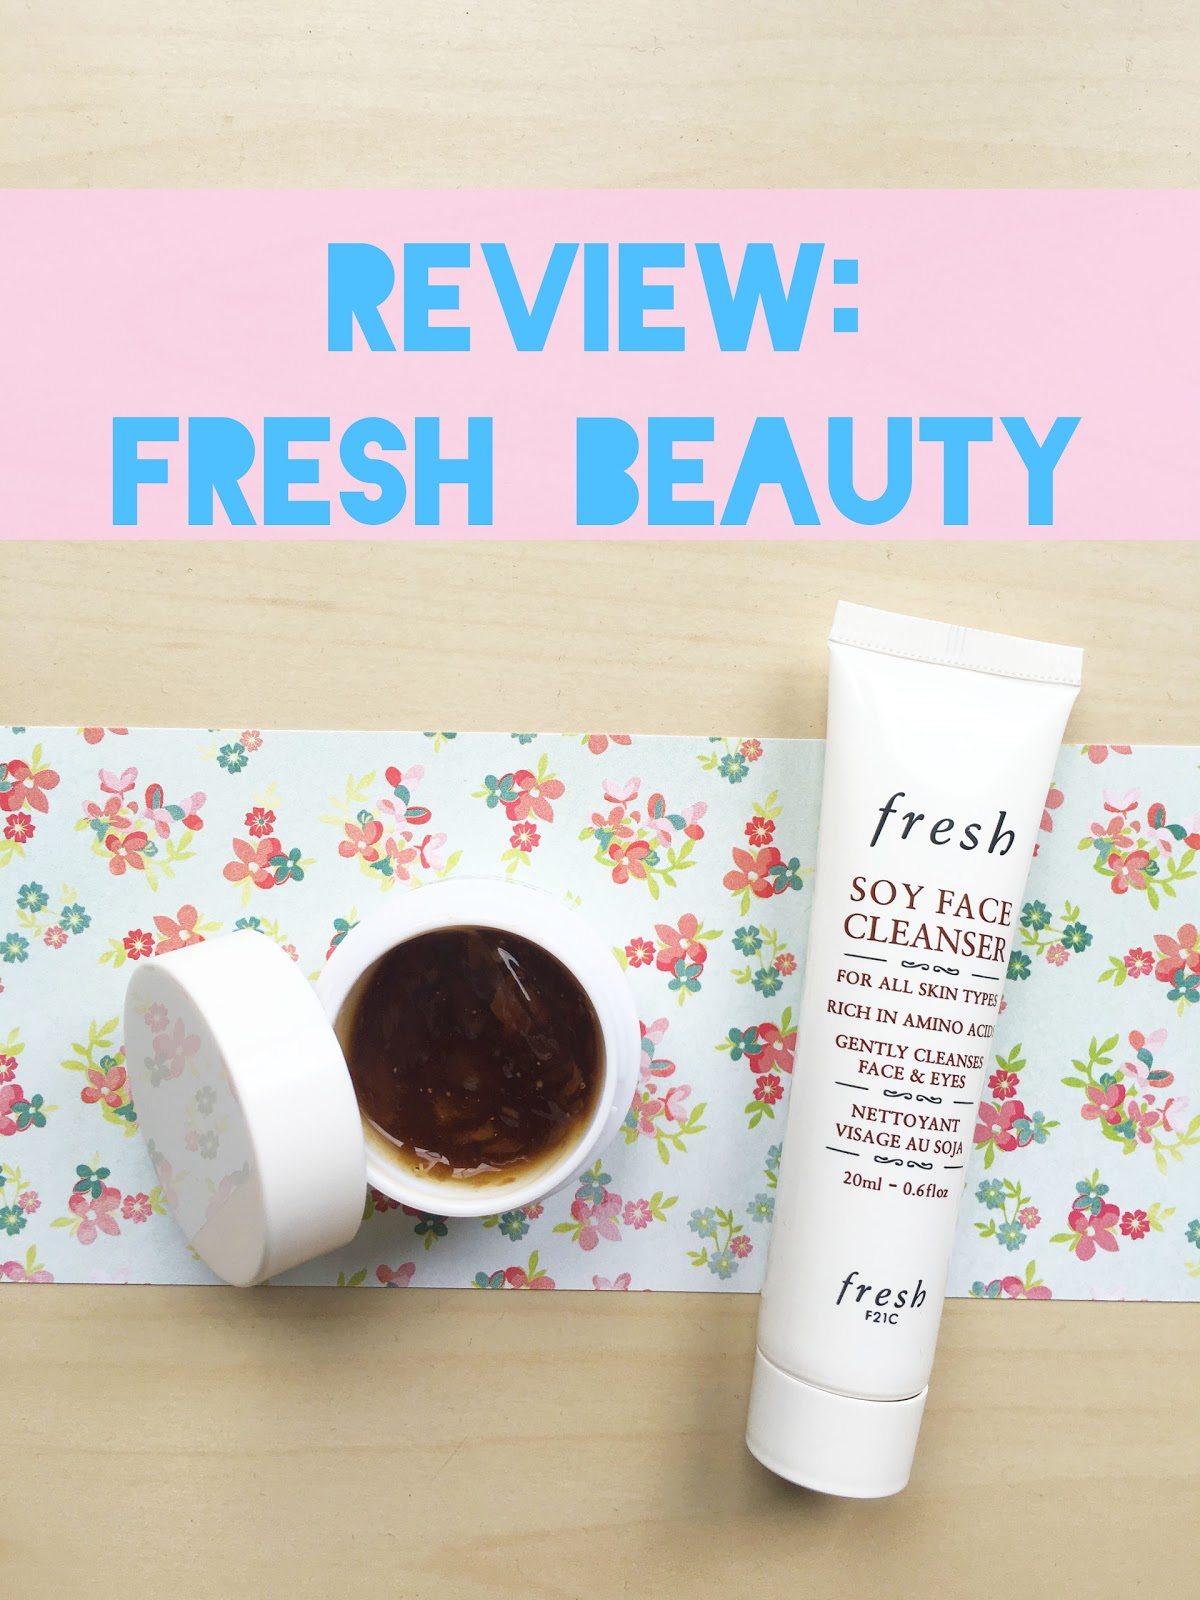 Review: Fresh Beauty | Akinokiki